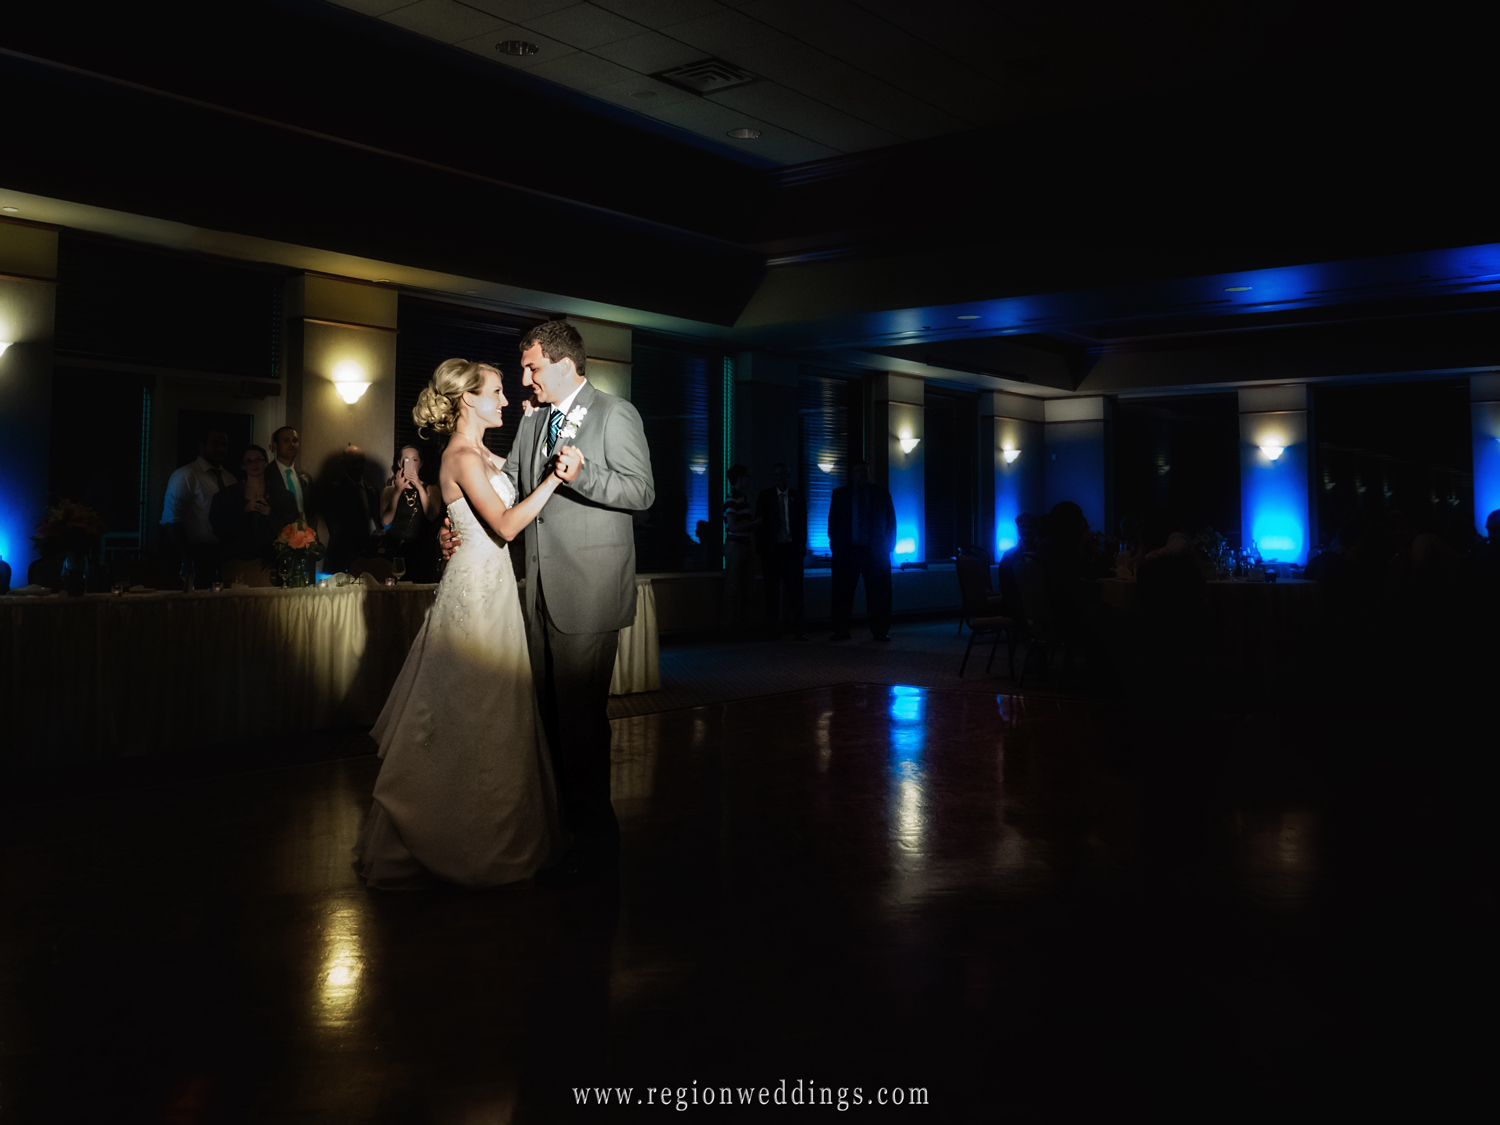 First dance at Sand Creek Country Club for the bride and groom.